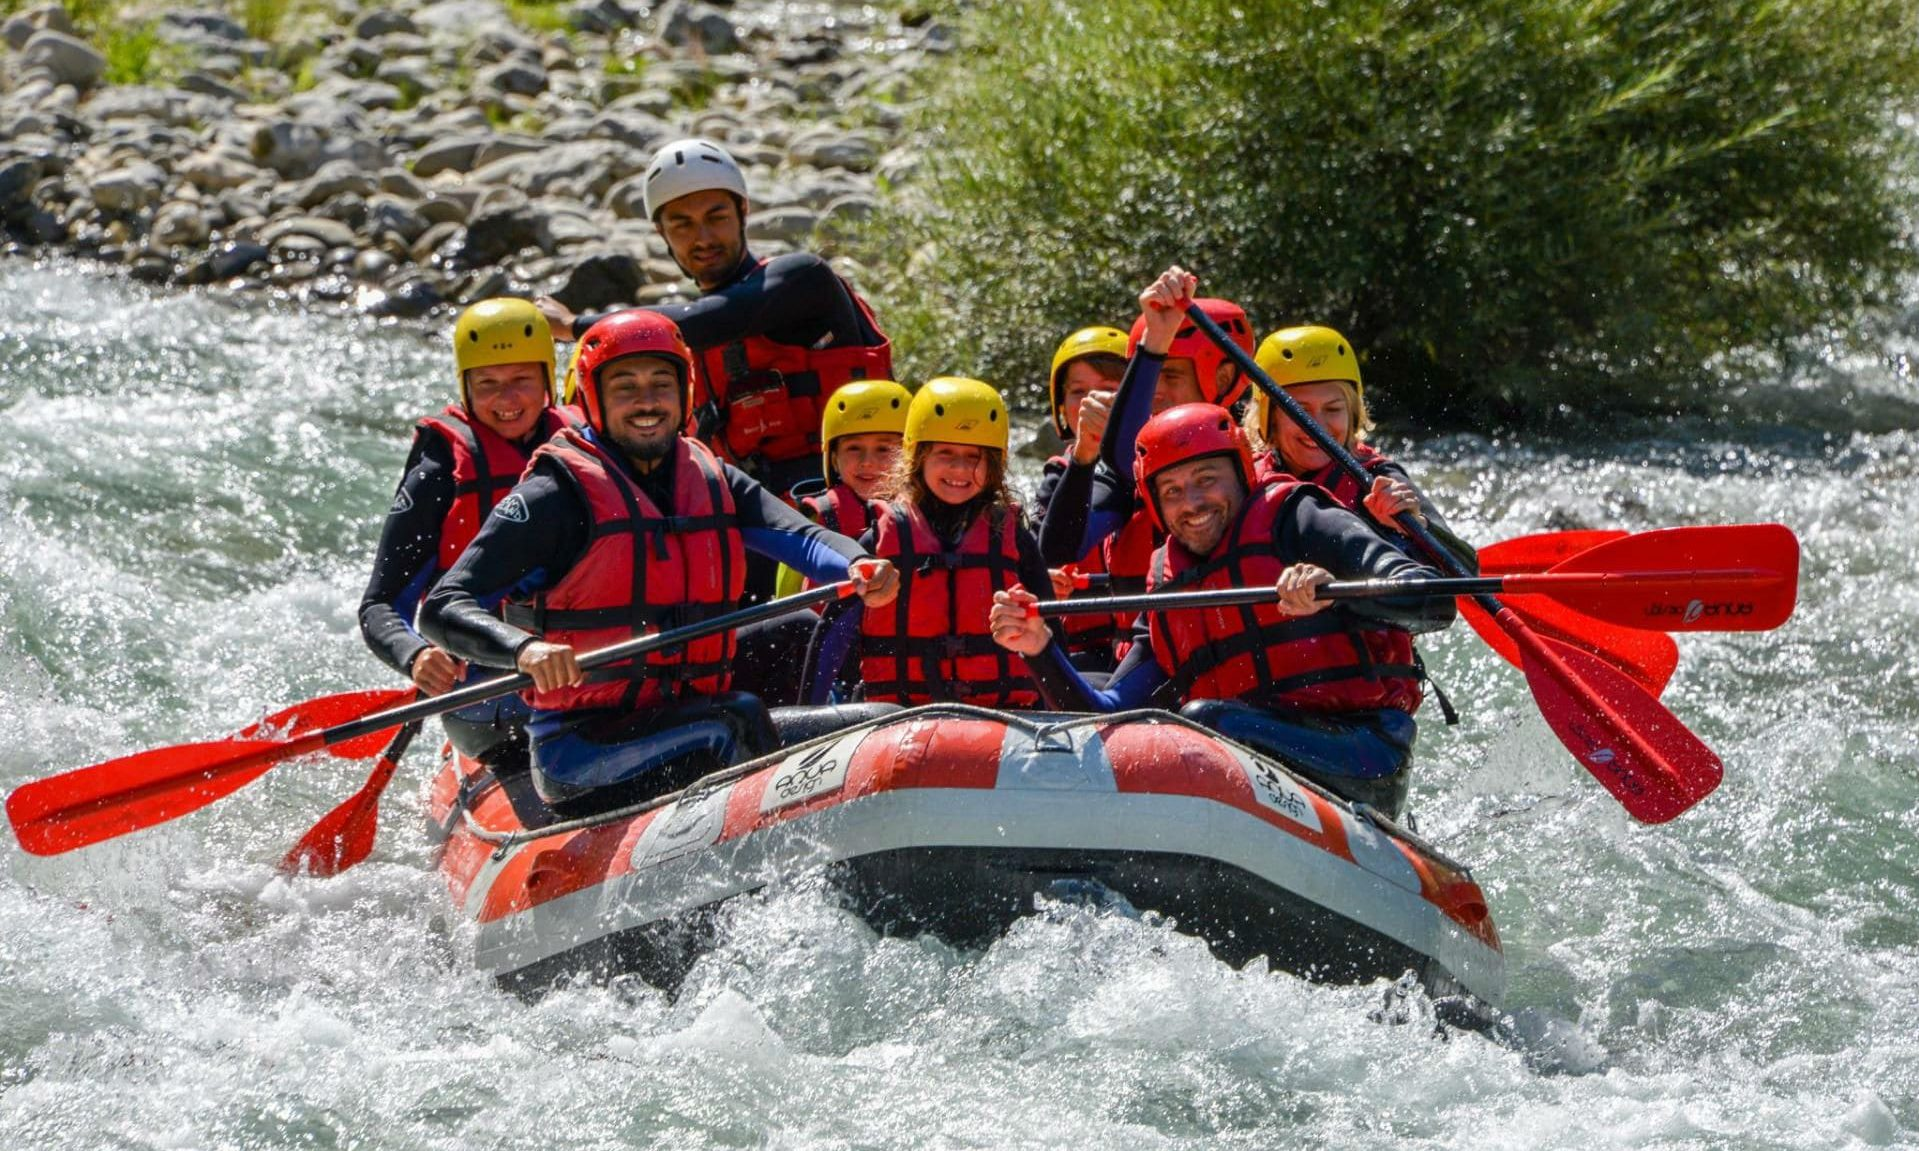 A group of people enjoying a white water rafting tour on the Verdon River.